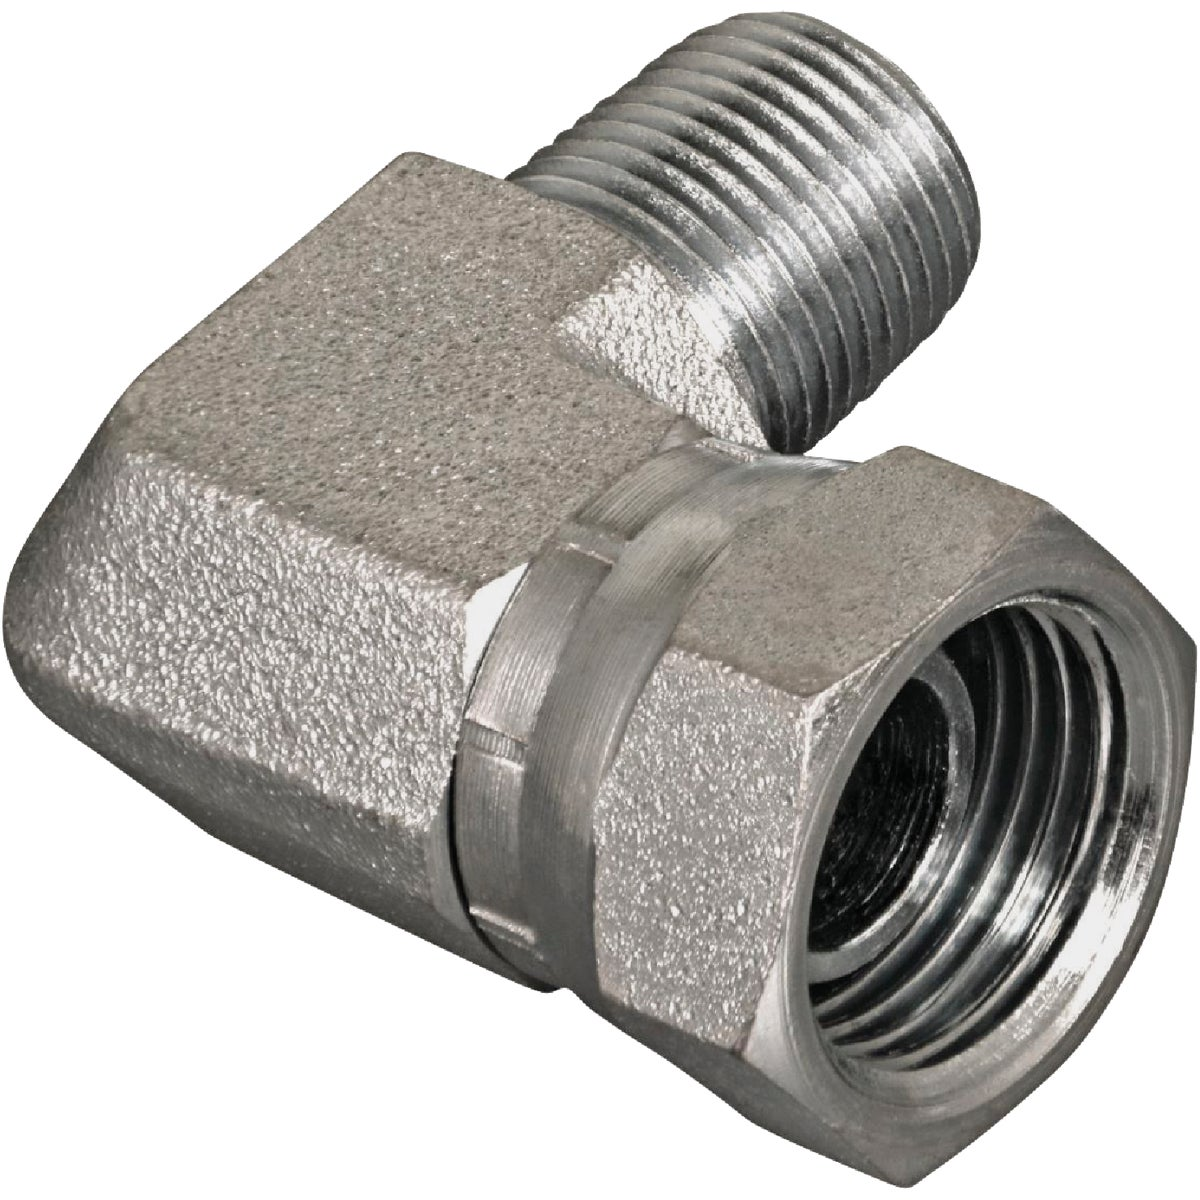 3/8FX3/8F SW HYD ADAPTER - 39005075 by Apache Hose Belting